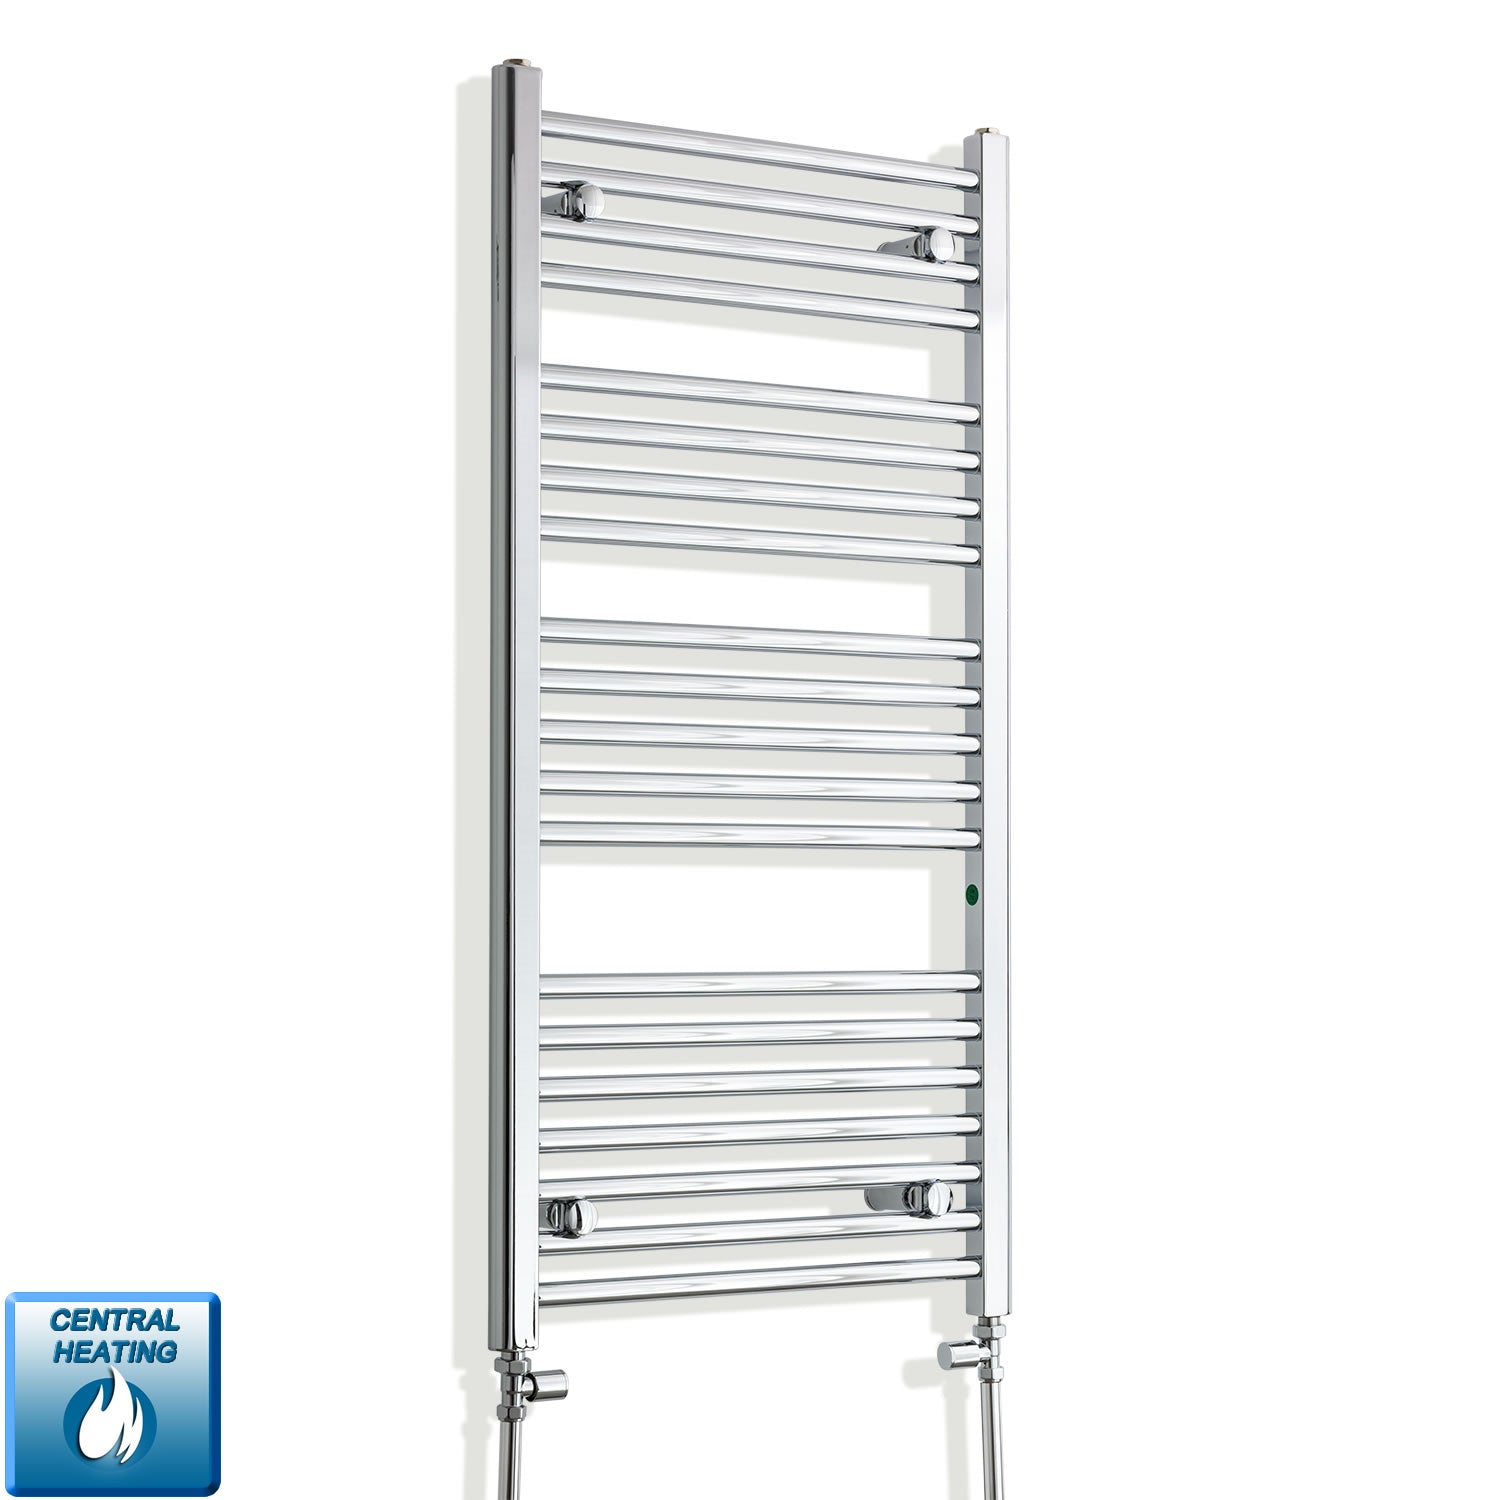 450mm Wide 1100mm High Flat Chrome Heated Towel Rail Radiator HTR,With Straight Valve